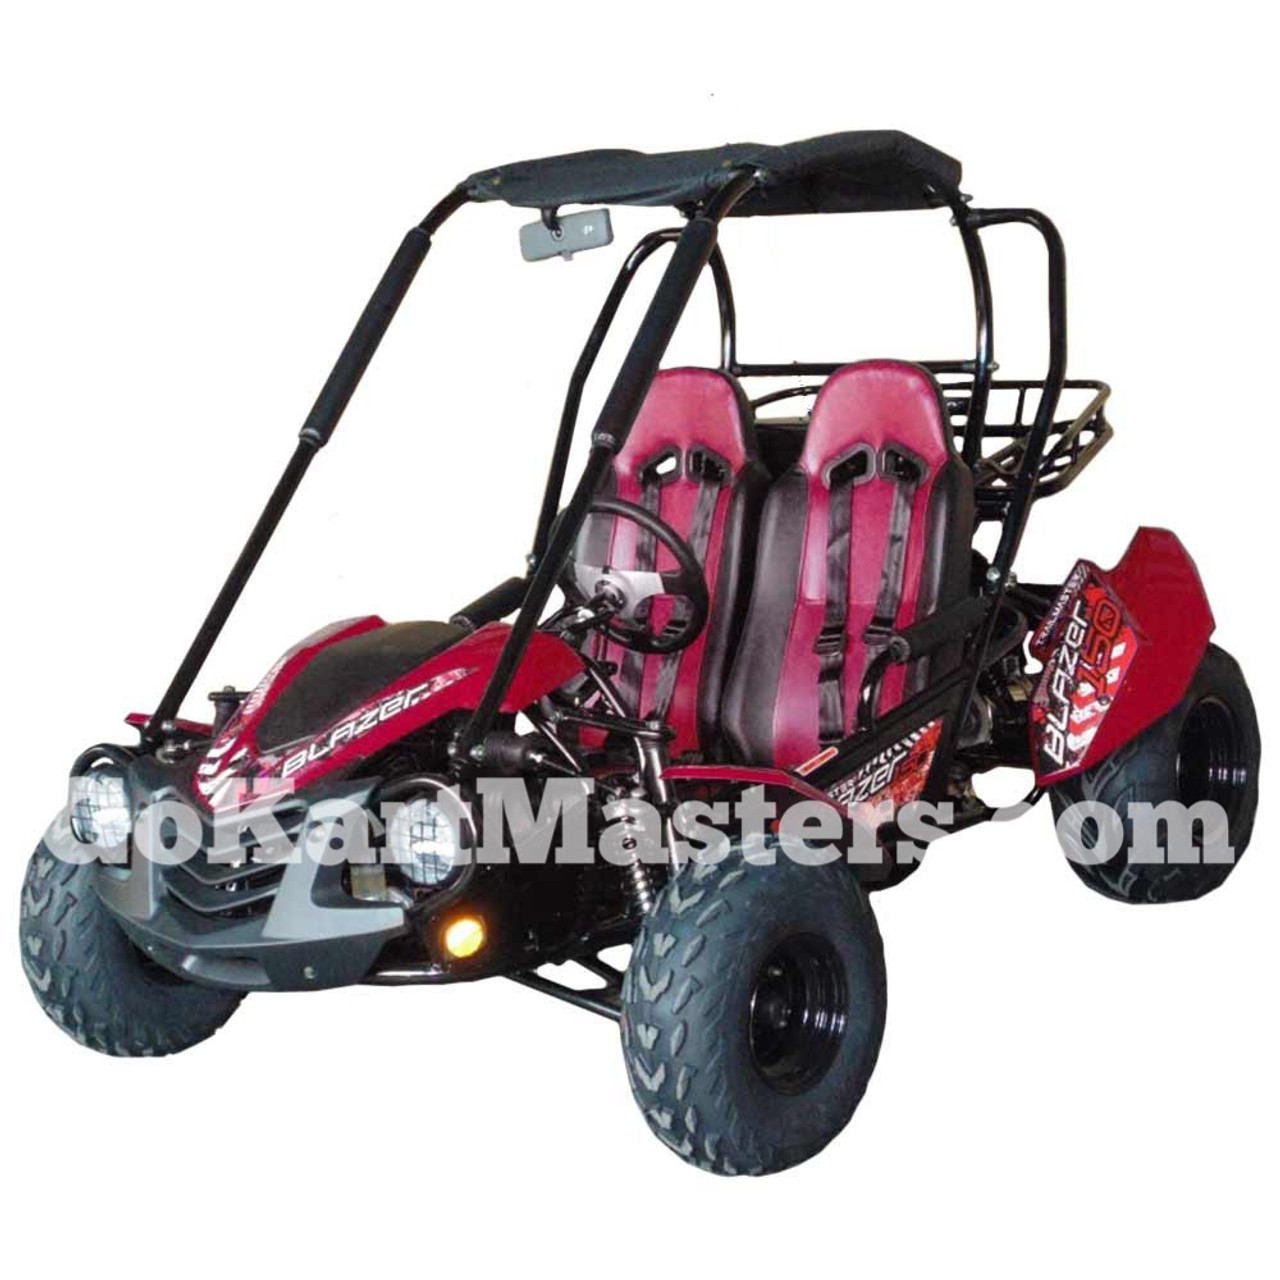 TrailMaster Blazer 150 Go Kart - Red